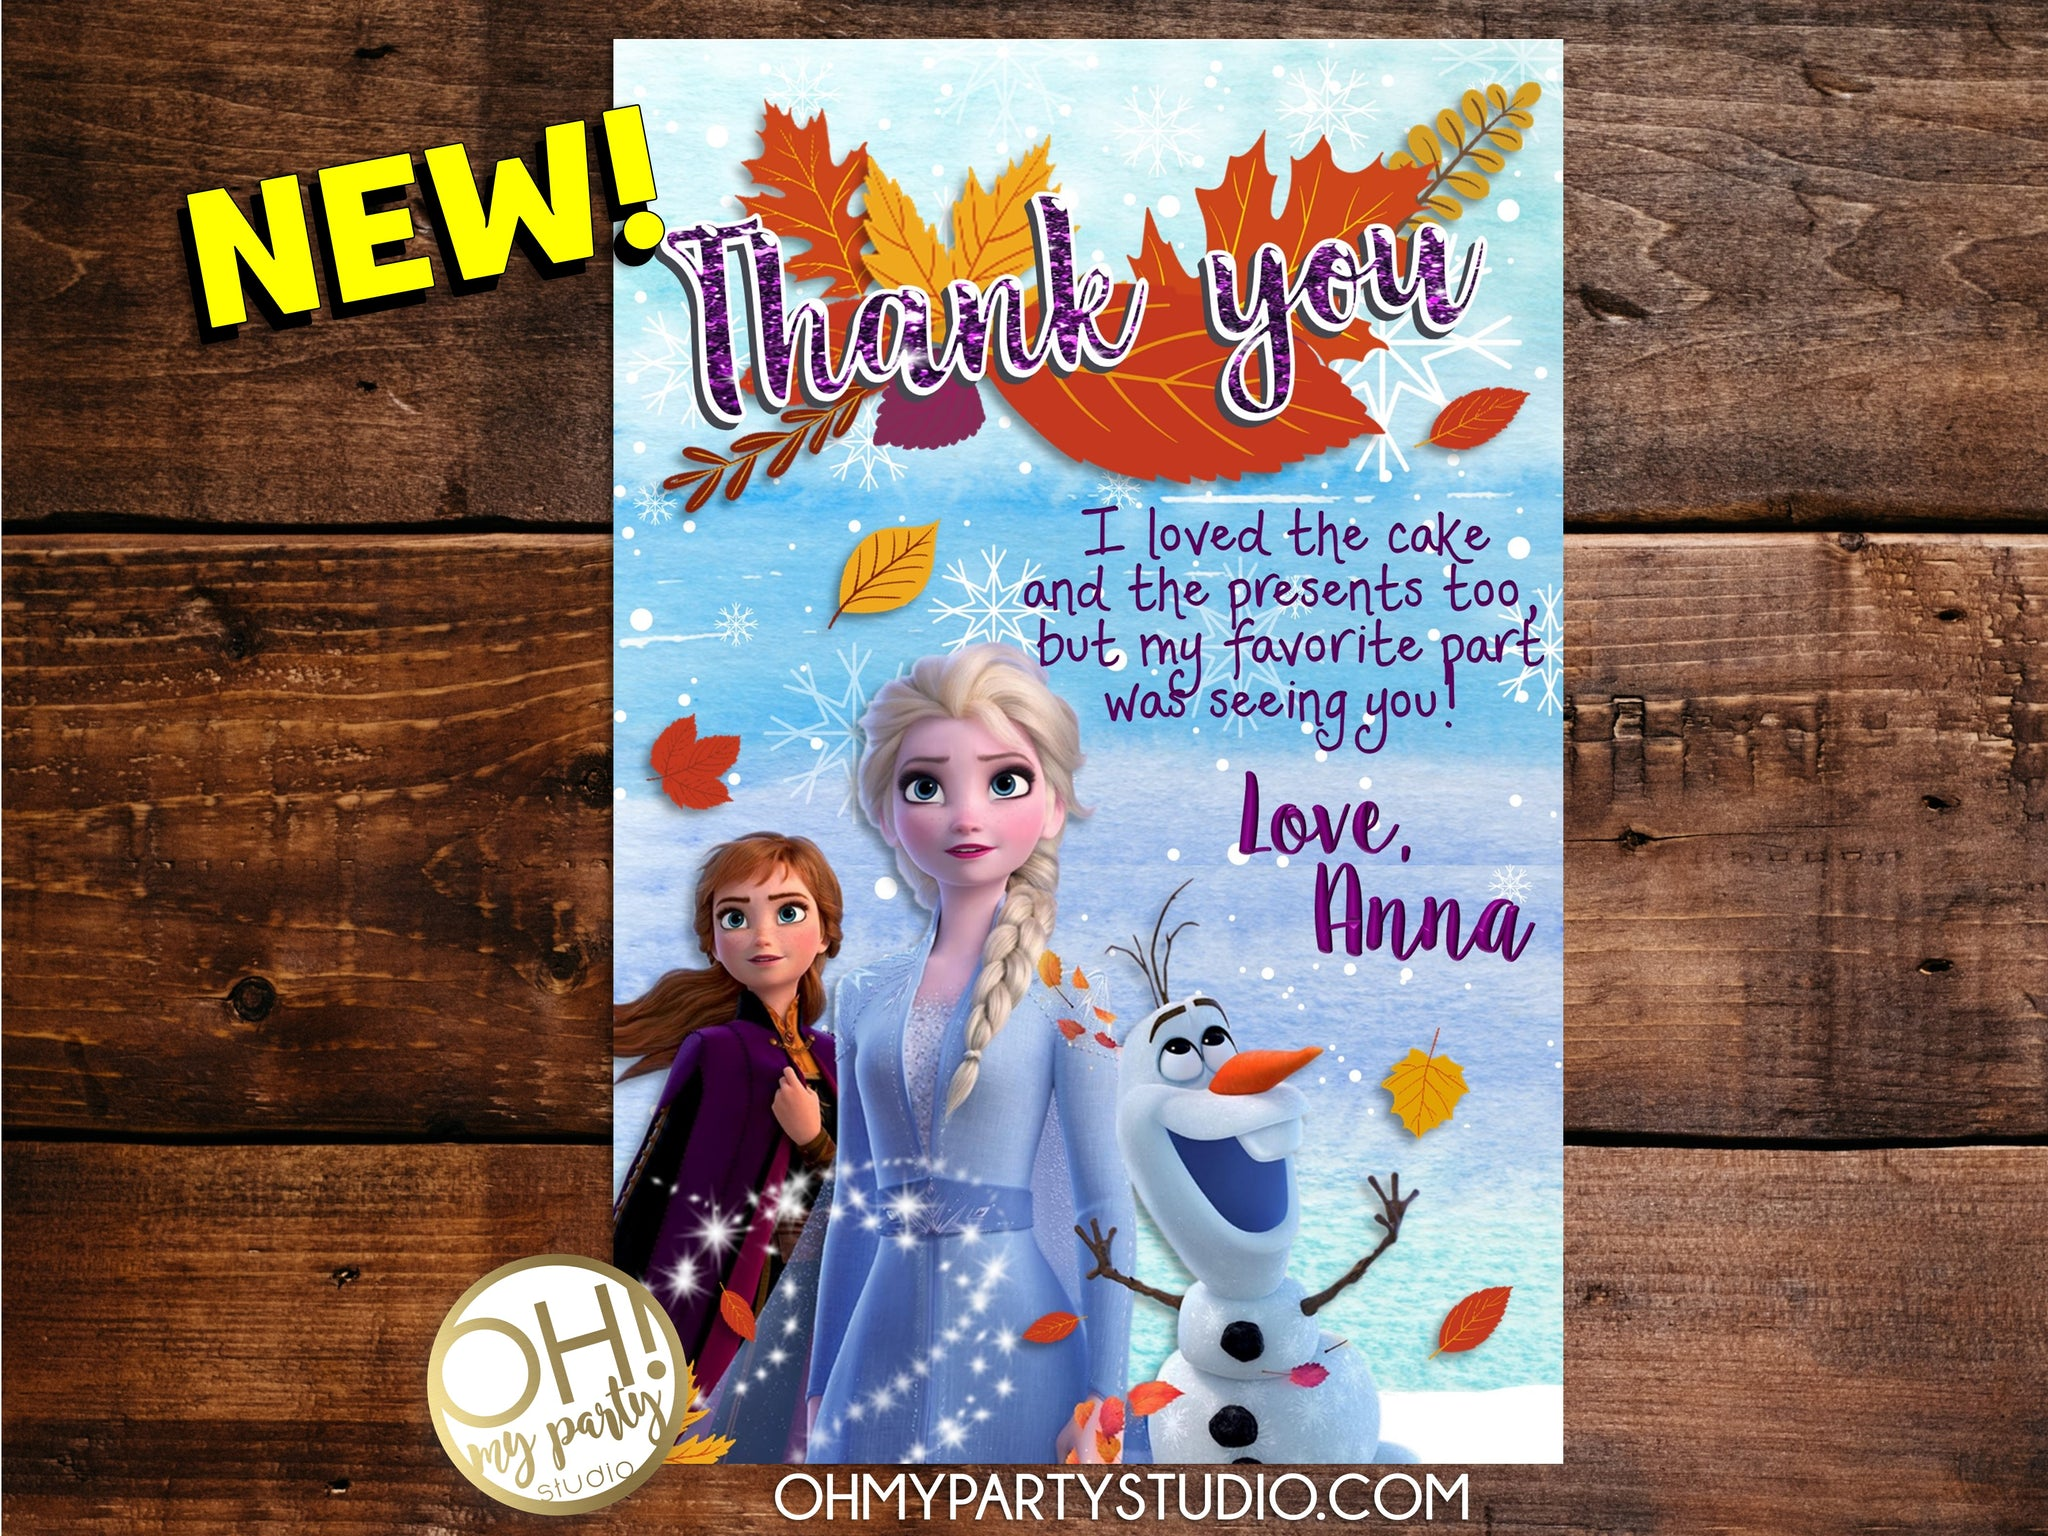 FROZEN 2 THANK YOU CARD, FROZEN 2 BIRTHDAY PARTY, FROZEN 2 PARTY, FROZEN 2 BIRTHDAY, FROZEN 2 BIRTHDAY PARTY, FROZEN 2 FAVORS, FROZEN 2 PARTY IDEAS, FROZEN 2 PARTY PRINTABLES, FROZEN 2 PARTY THEME, FROZEN 2 PARTY SUPPLIES, FROZEN 2